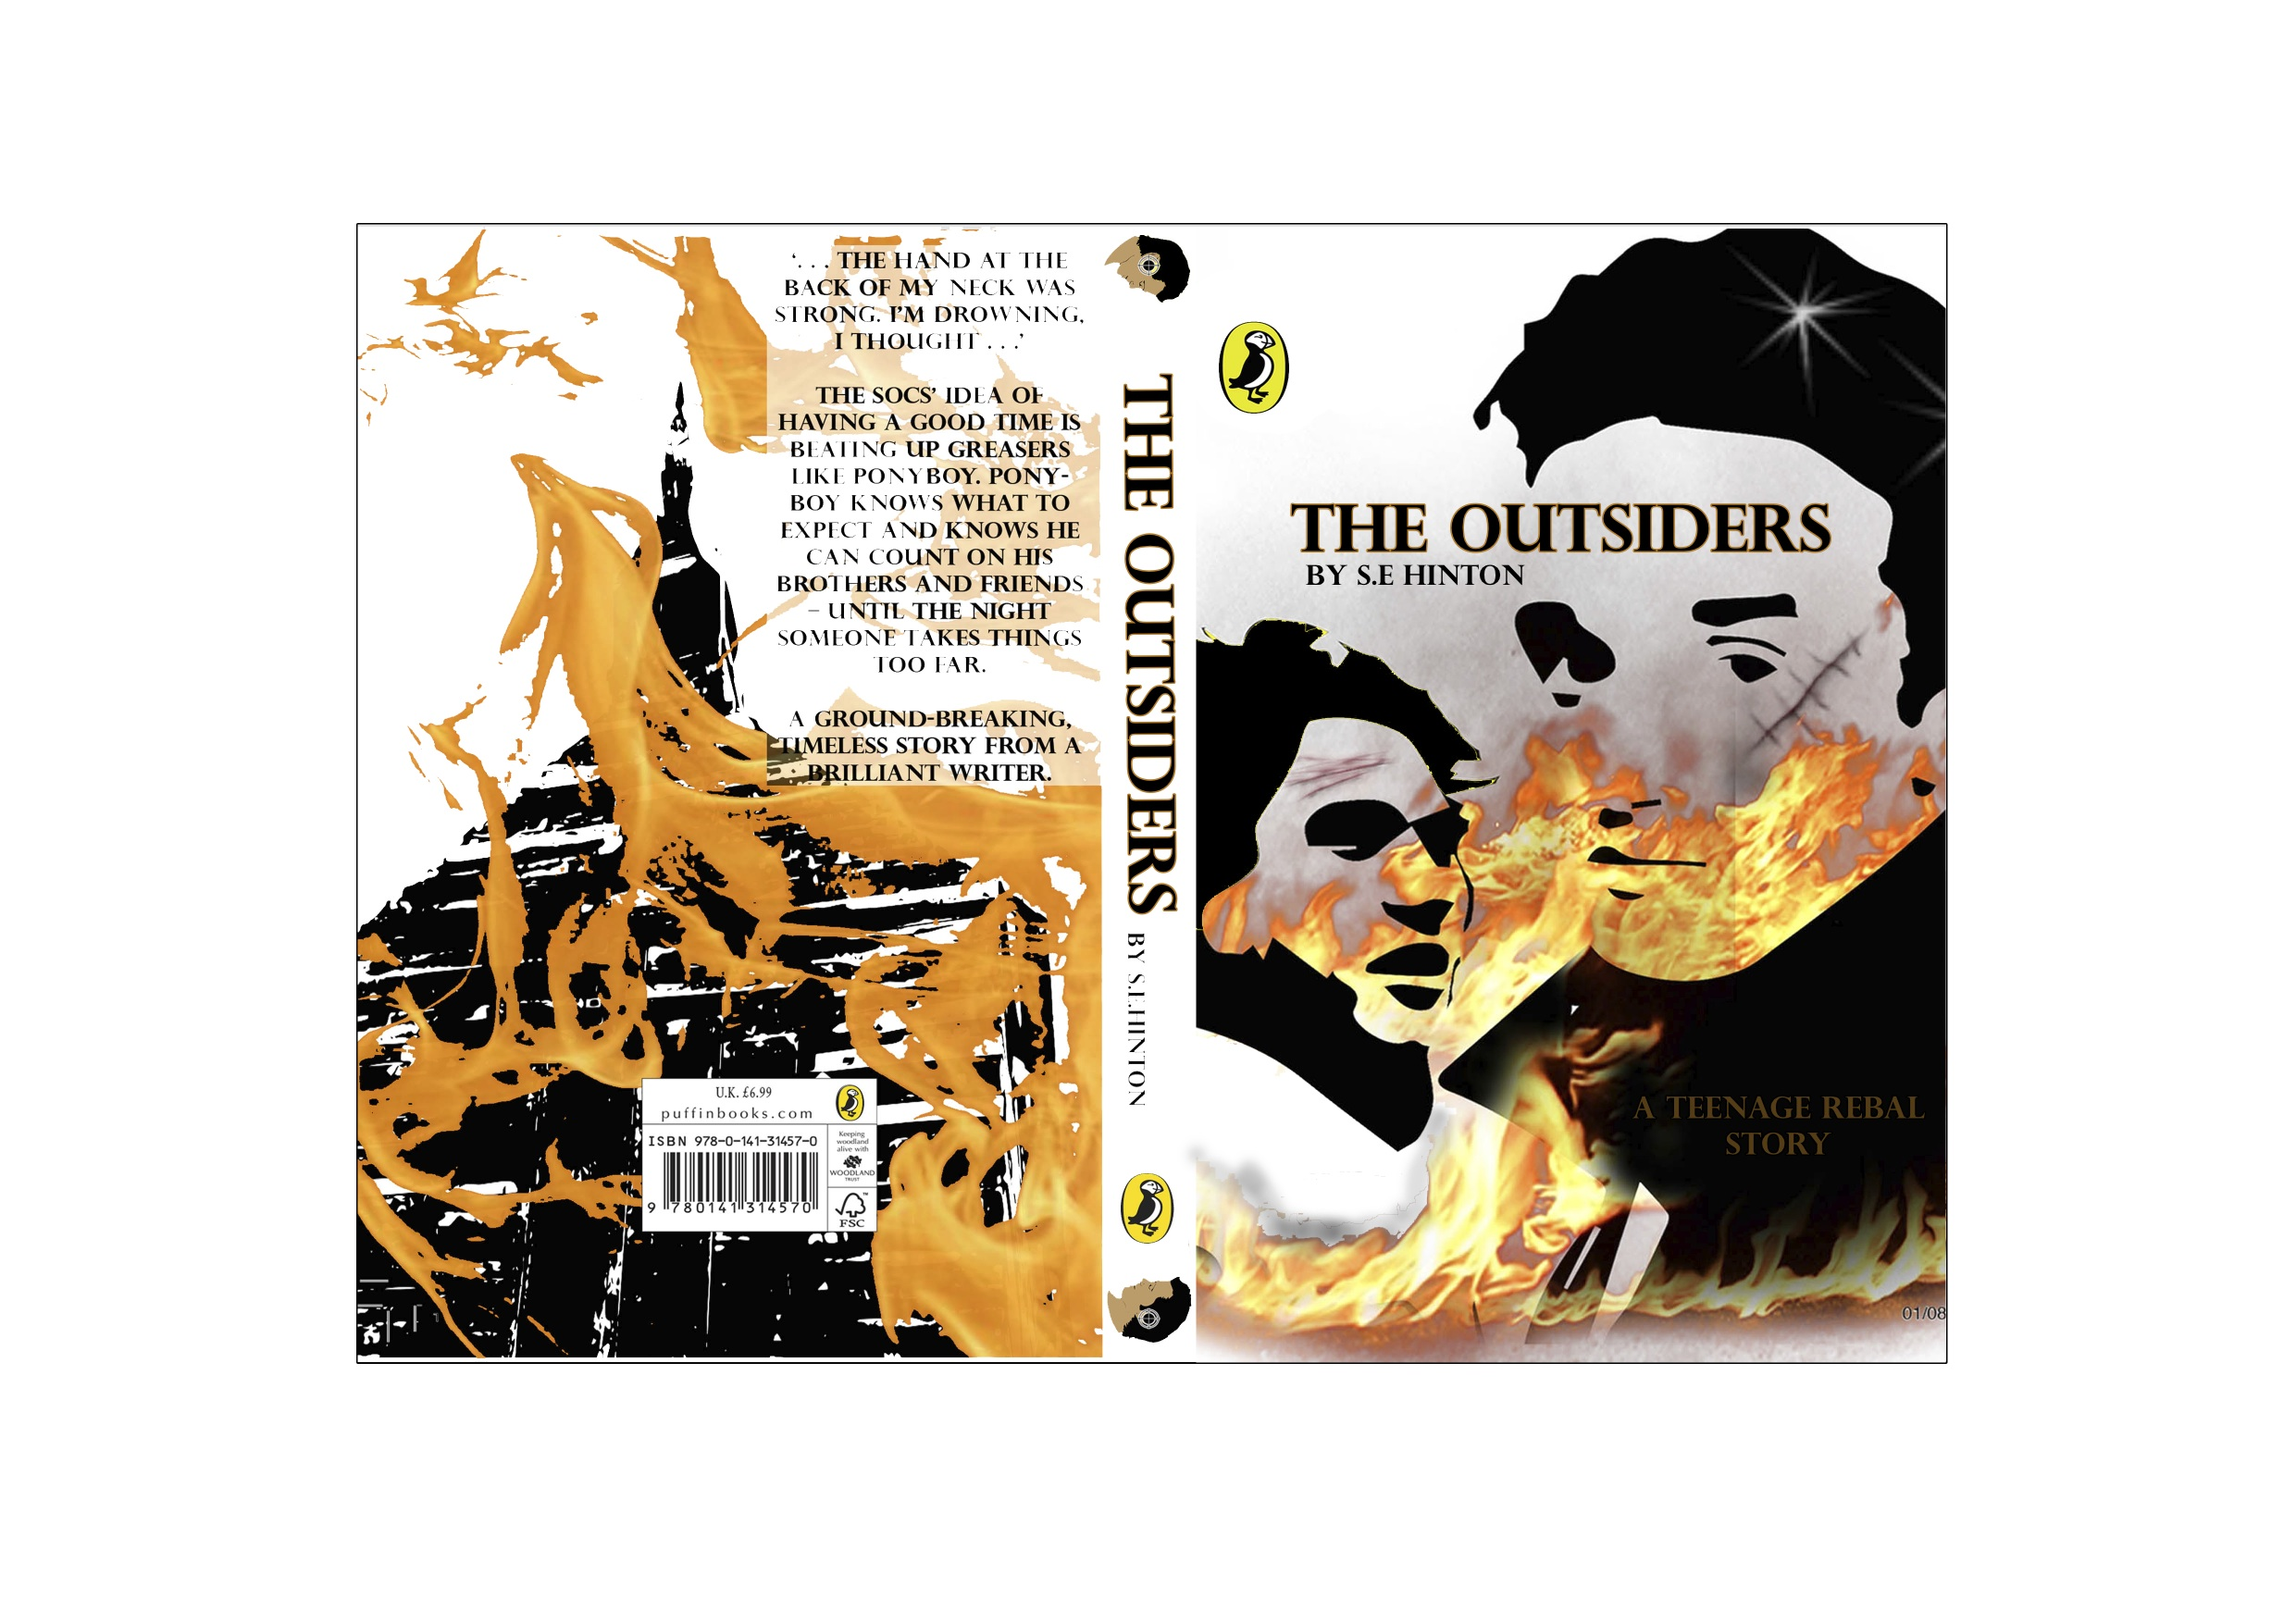 The Outsiders Book Cover Pictures ~ The outsiders book cover dwight leiba graphic design